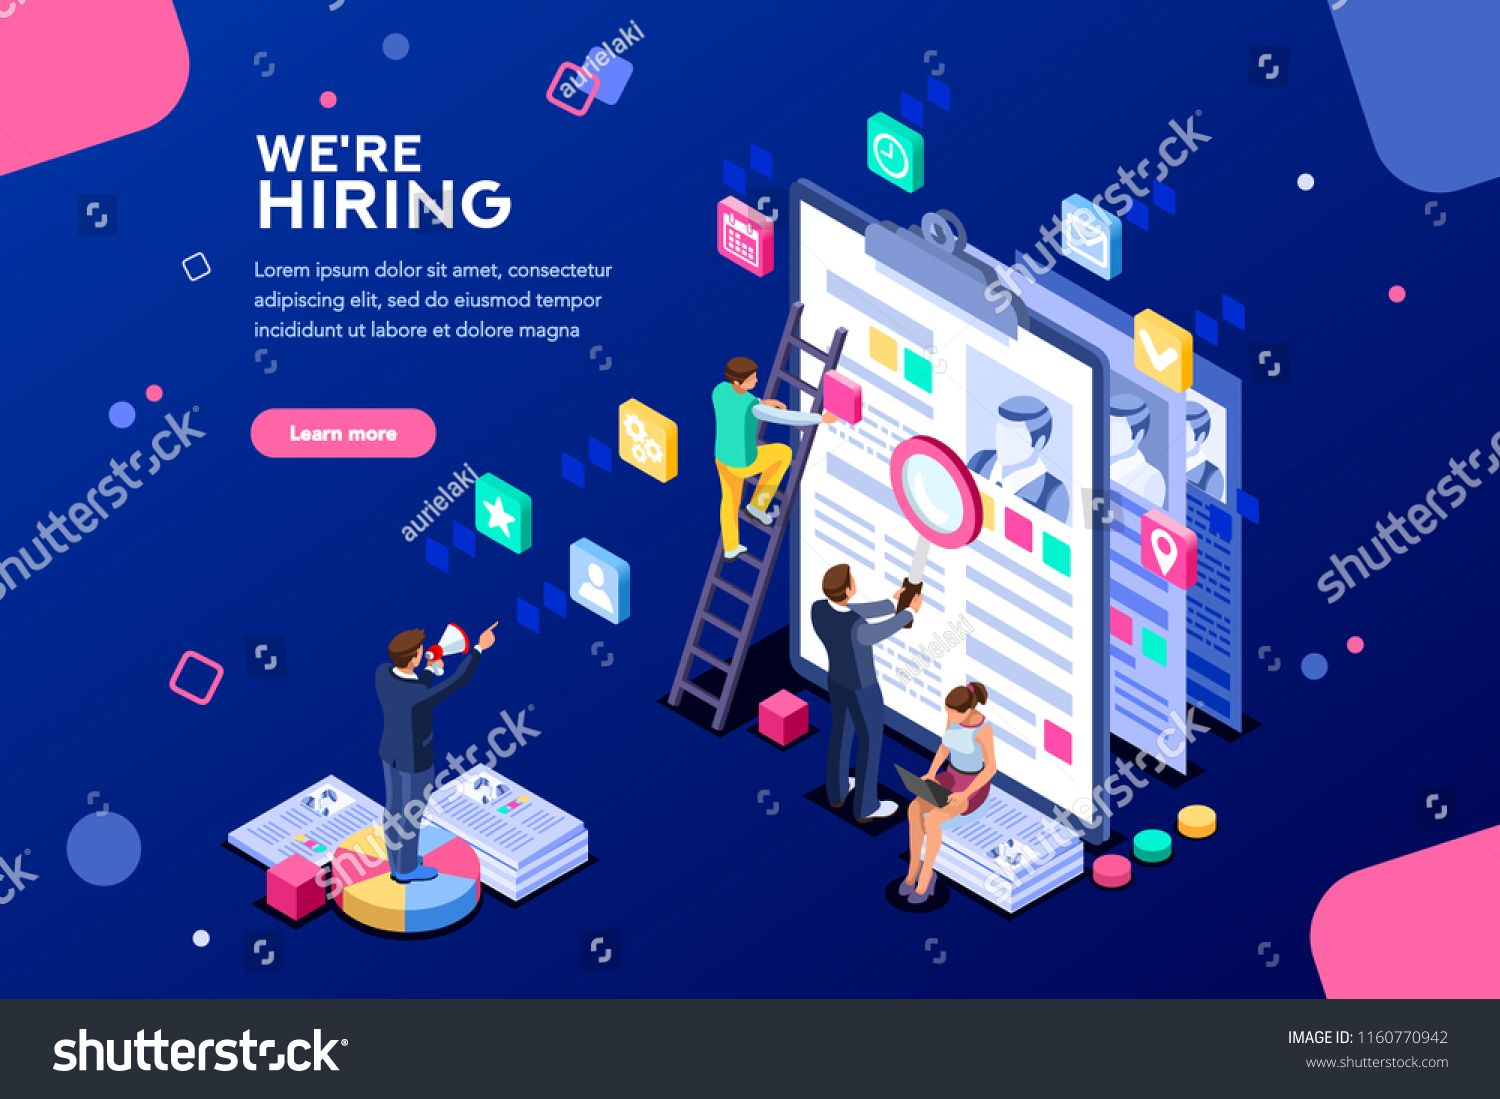 Job Presentation Fair Banner Page Choose Career Or Interview A Candidate Job Agency Human Resources Creative Find Experienc Job Agency Isometric Presentation